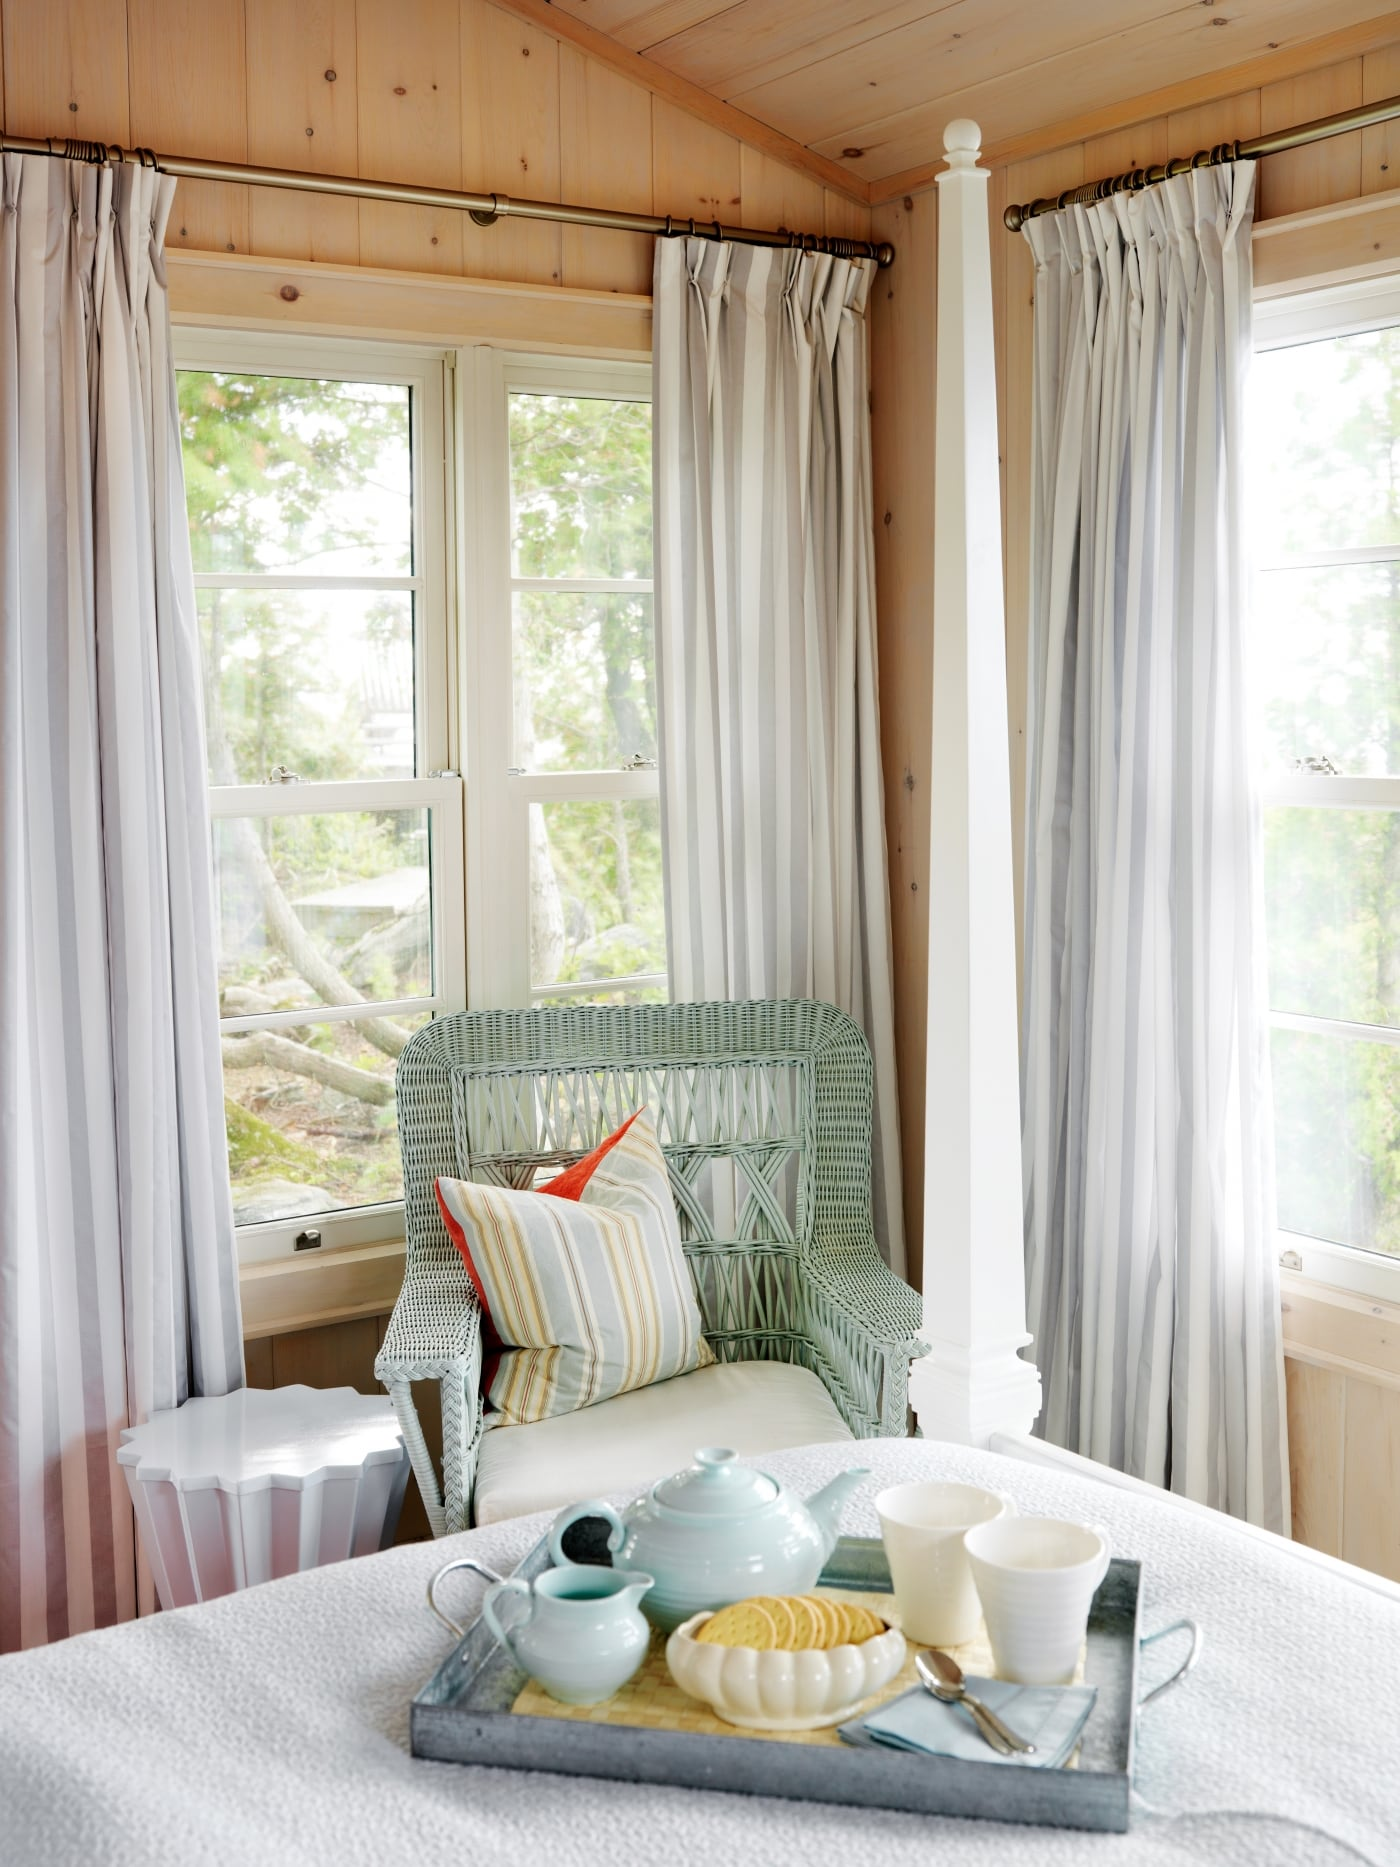 #SarahRichardson #cottagestyle Knotty pine paneling in cottage bedroom with green wicker chair - Sarah Richardson